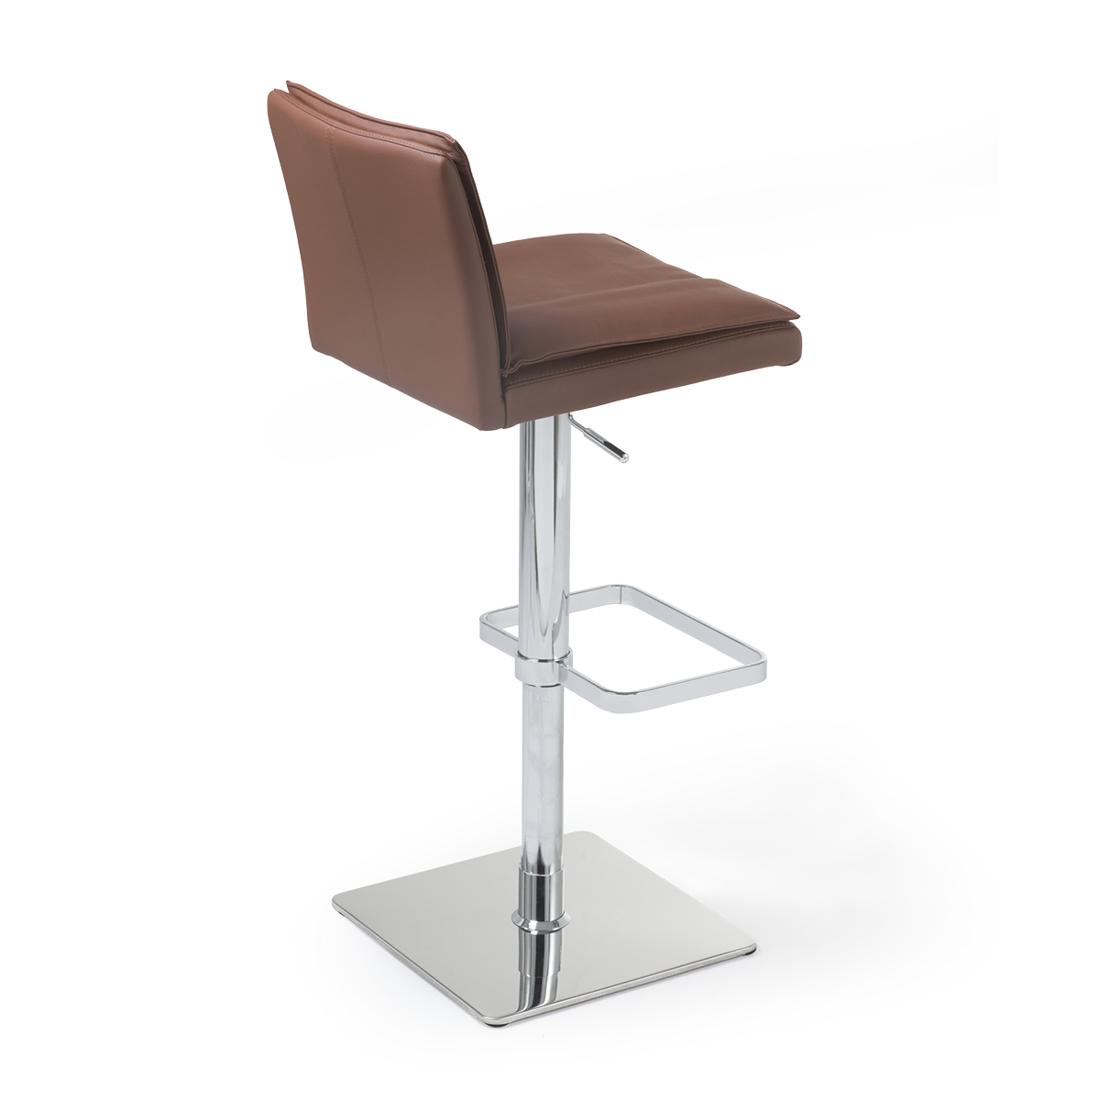 Picture of MAXSOFT ADJUSTABLE HEIGHT STOOL   54x49xh86 cm